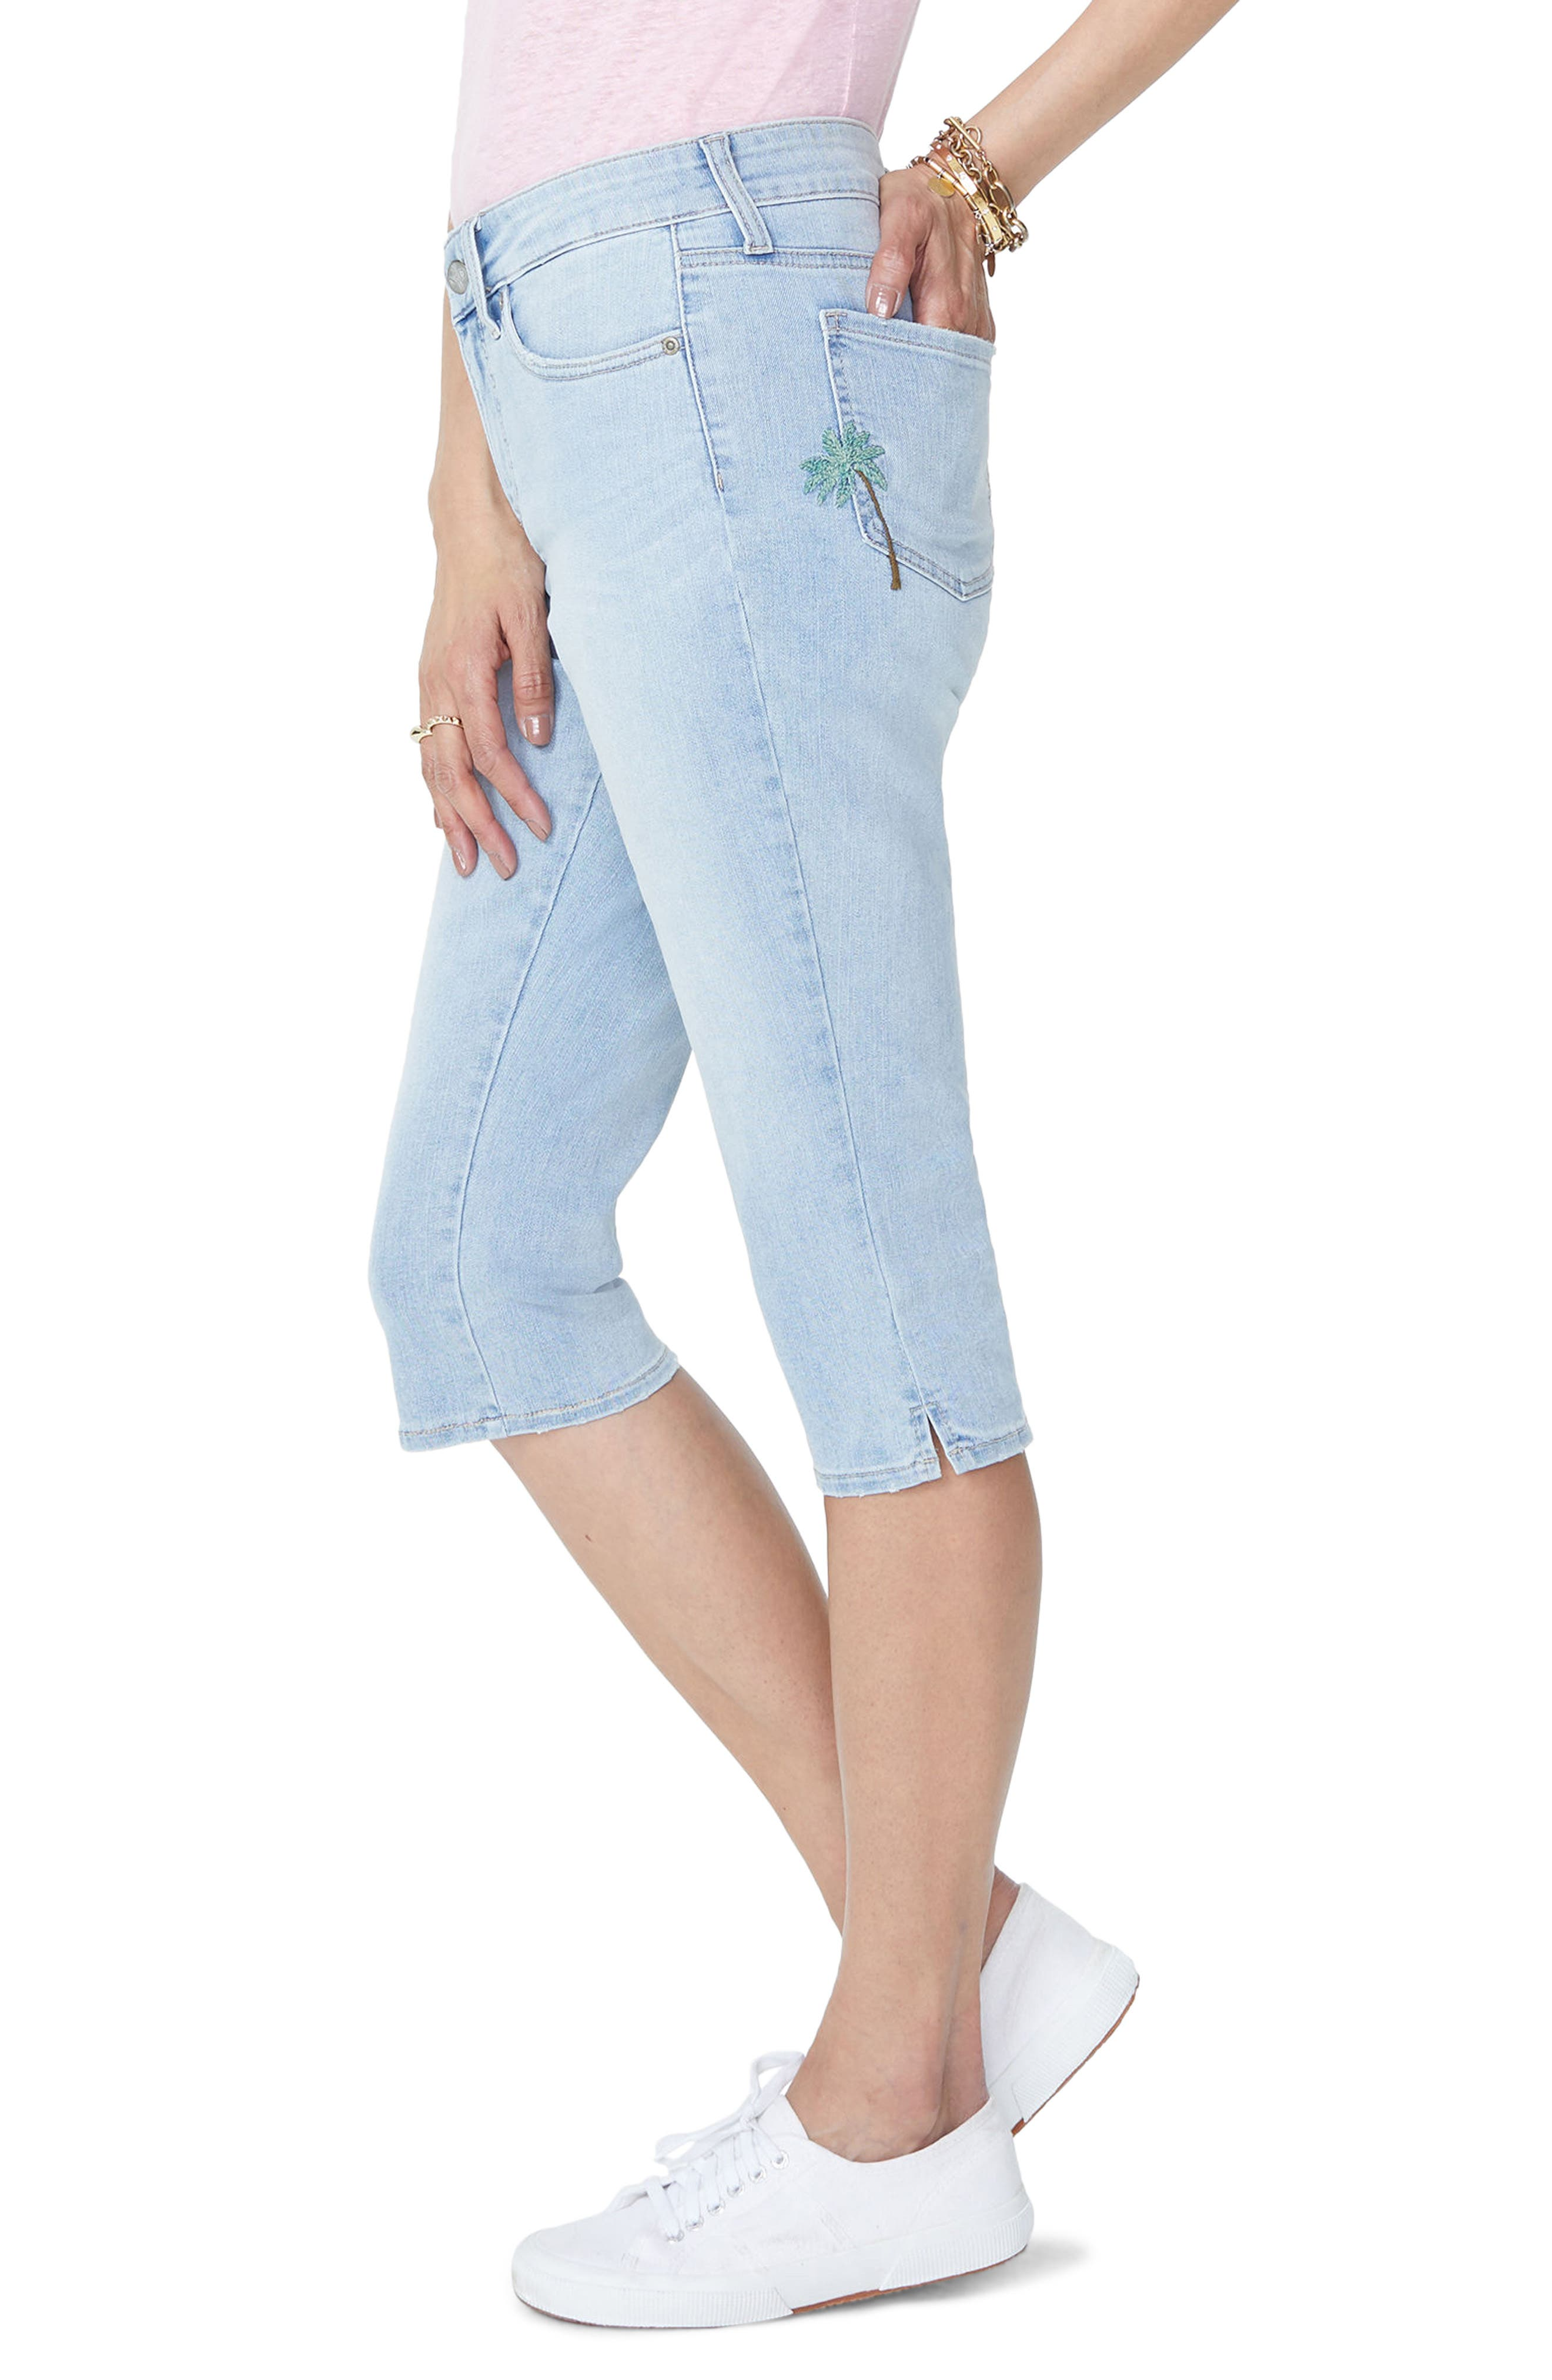 Embroidered Stretch Skinny Capri Jeans,                             Alternate thumbnail 3, color,                             424